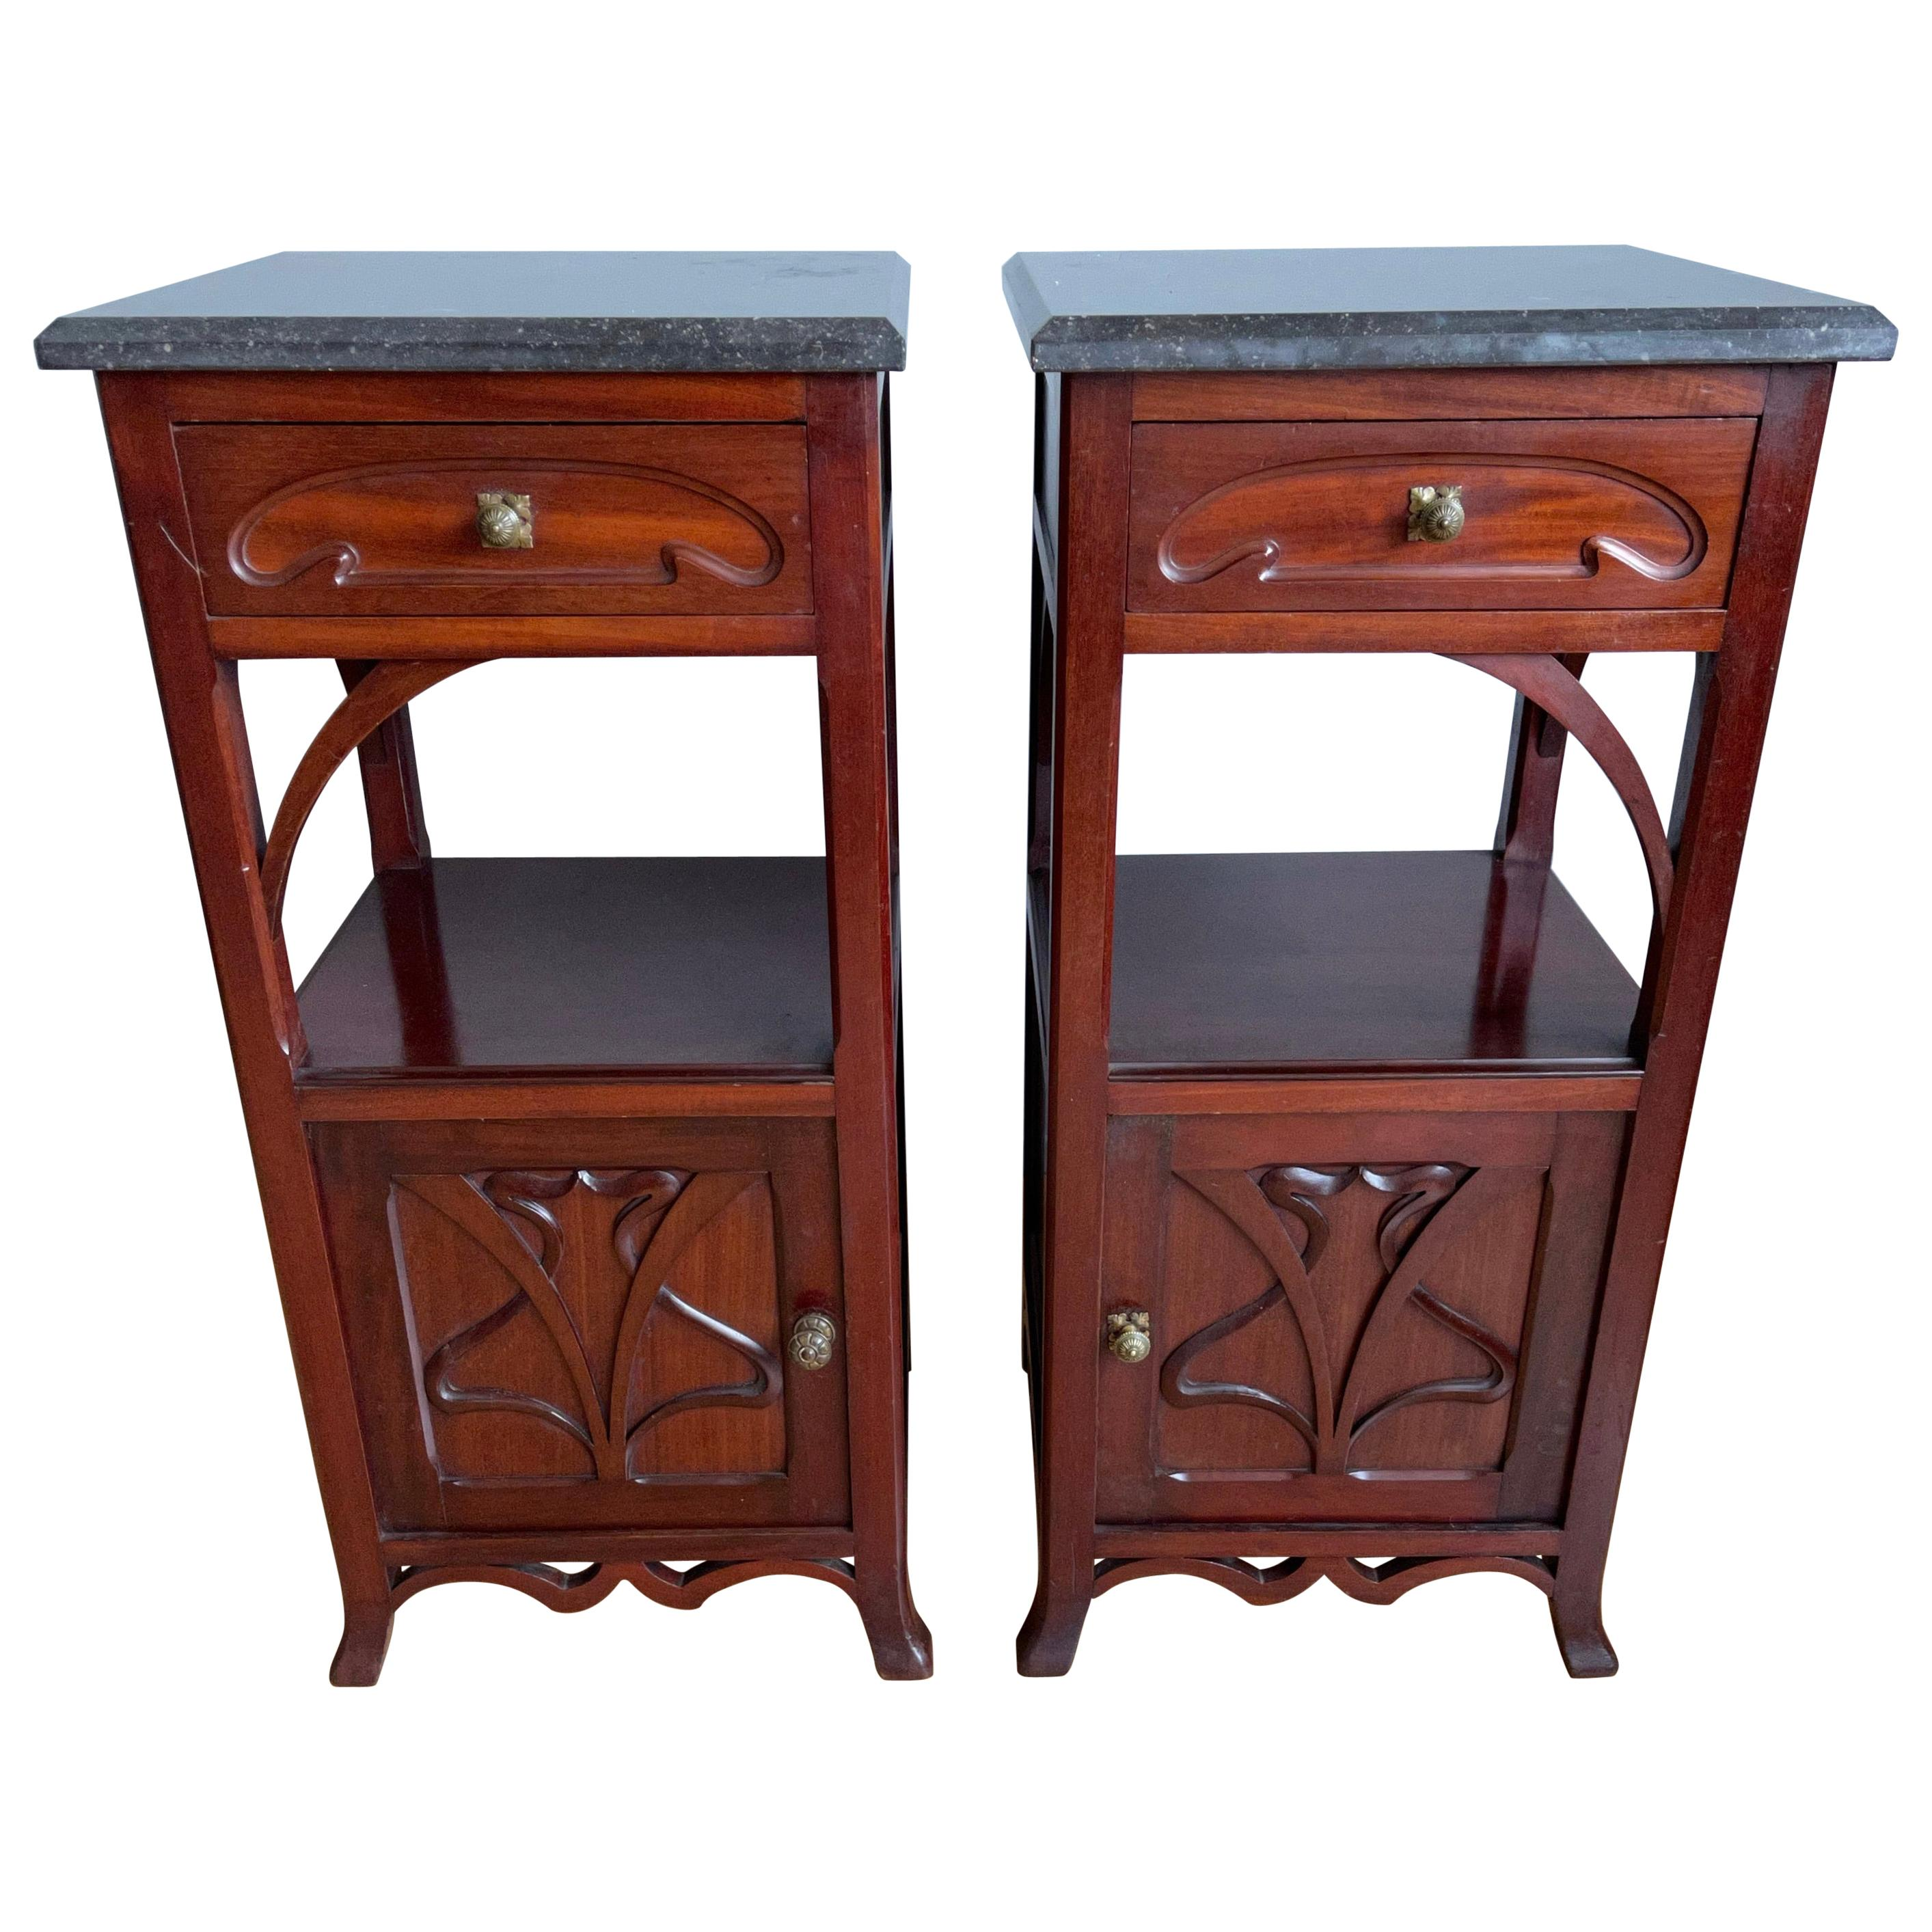 Pair of Solid Mahonie Wood Dutch Arts & Crafts Bedside Cabinets with Marble Top